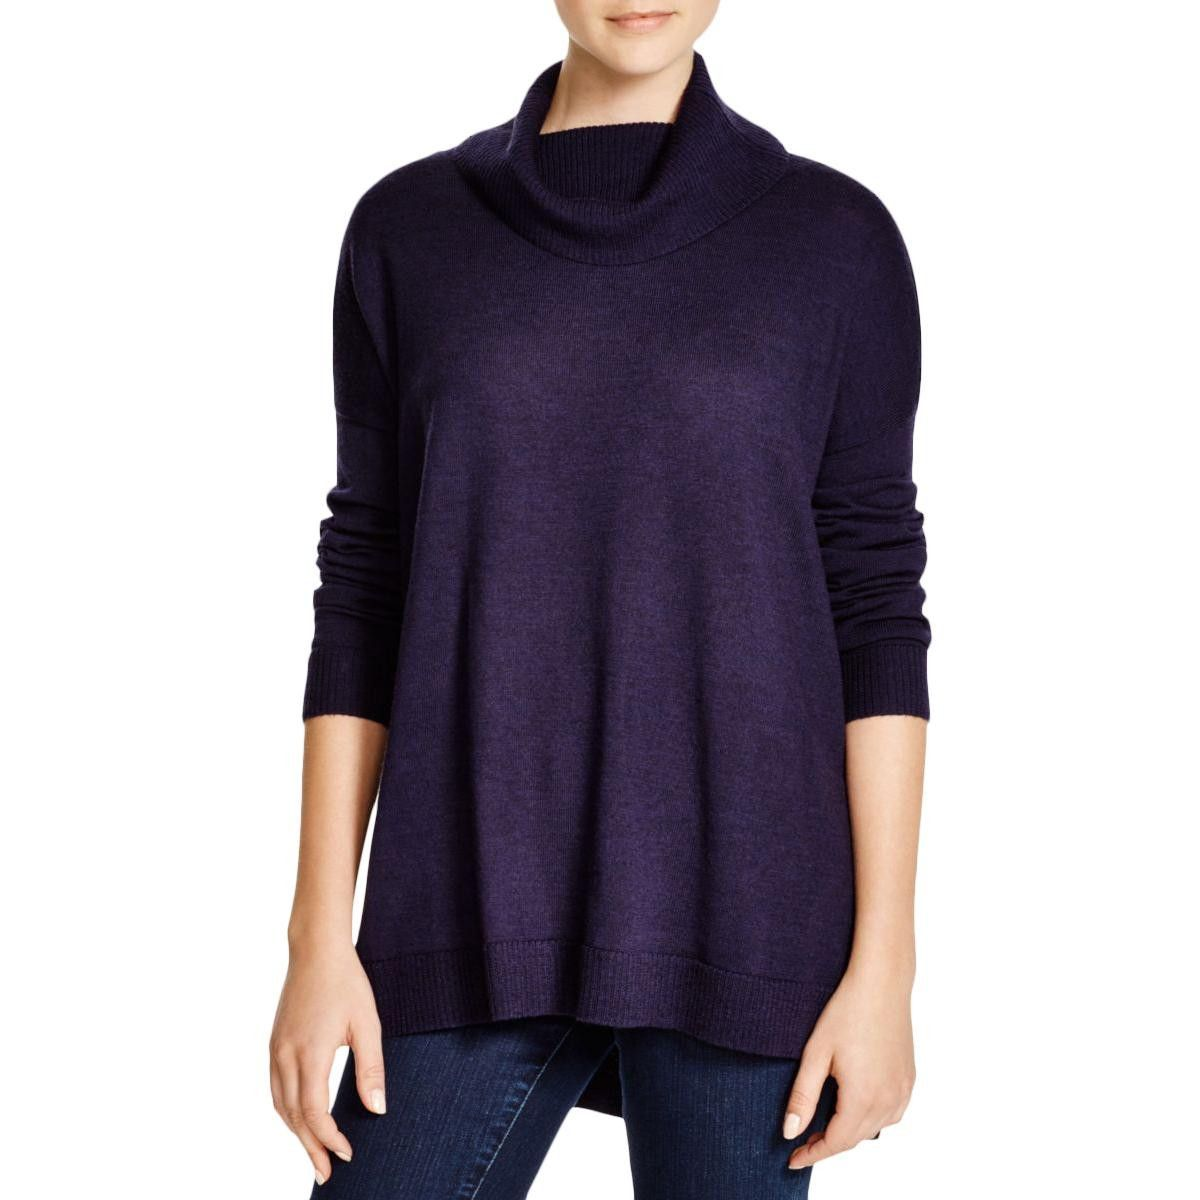 Womens Turtleneck Pullover Tunic Sweater | Eileen fisher